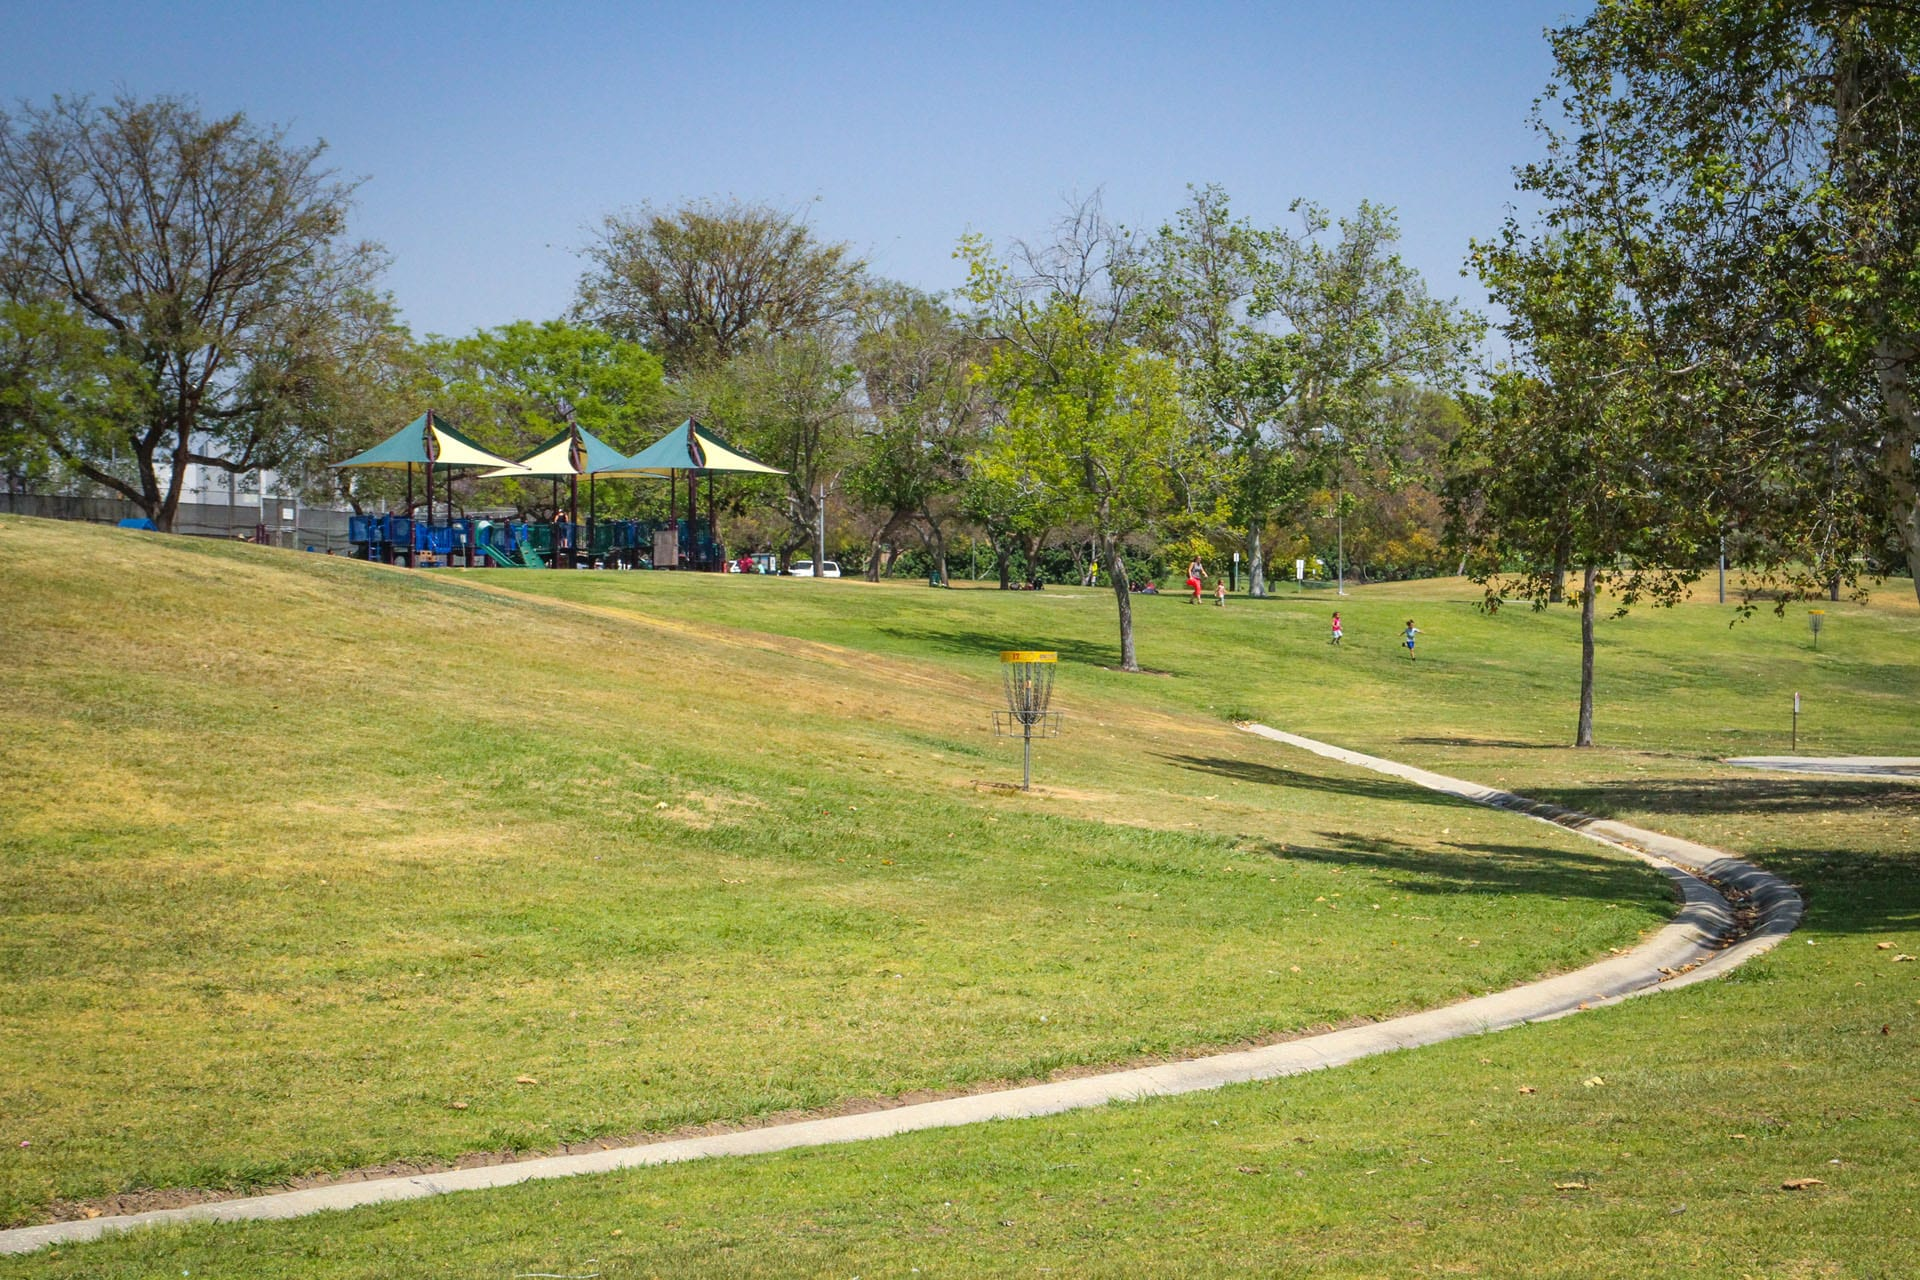 Grassy park with path and playground